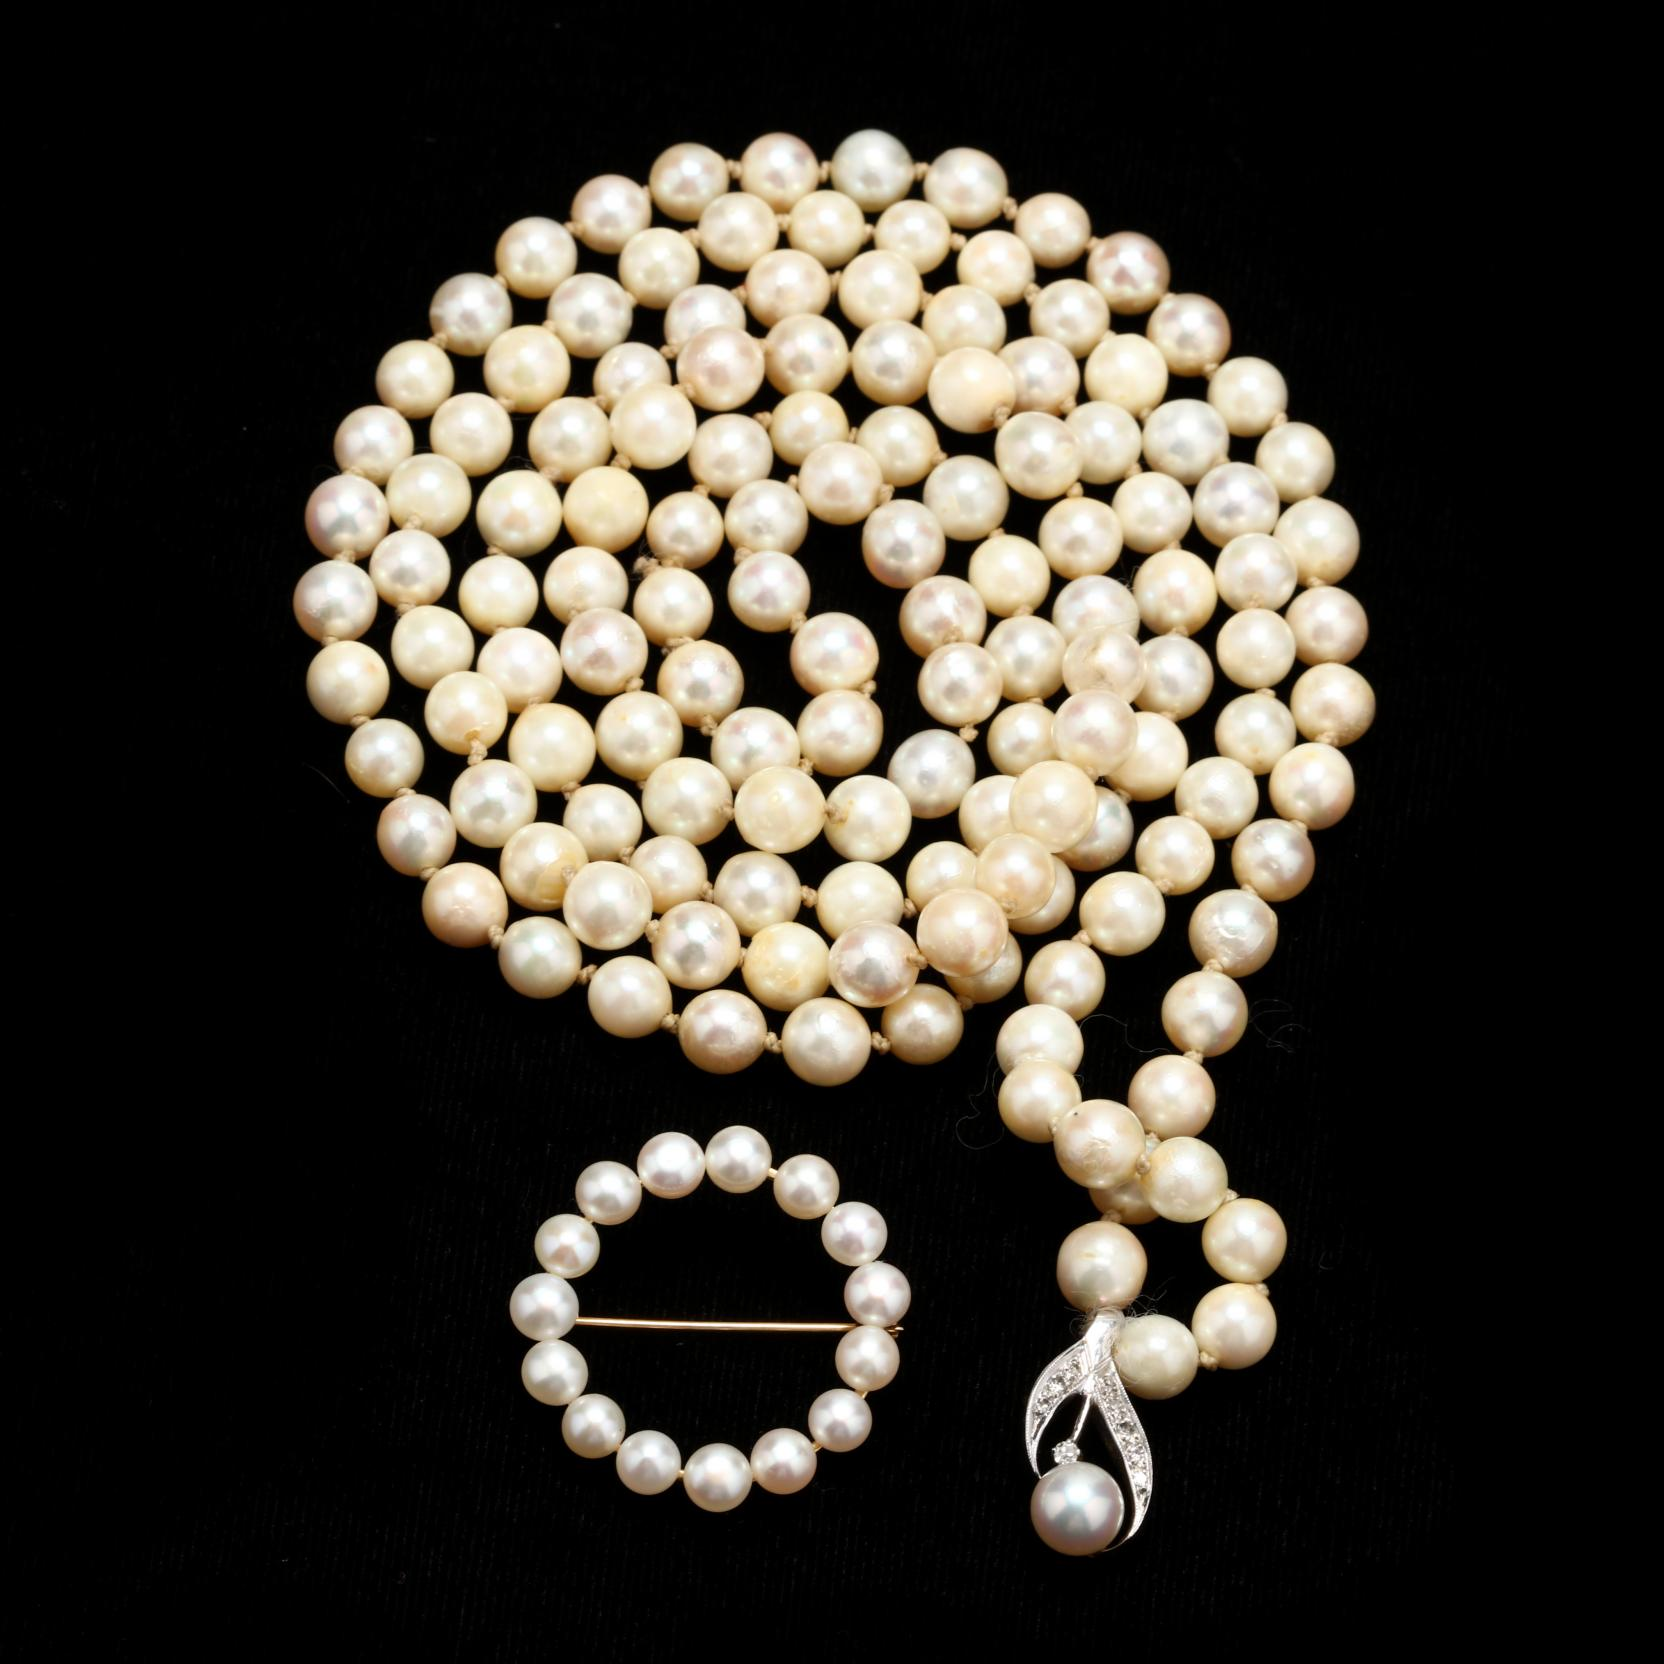 pearl-and-diamond-necklace-and-a-pearl-circle-brooch